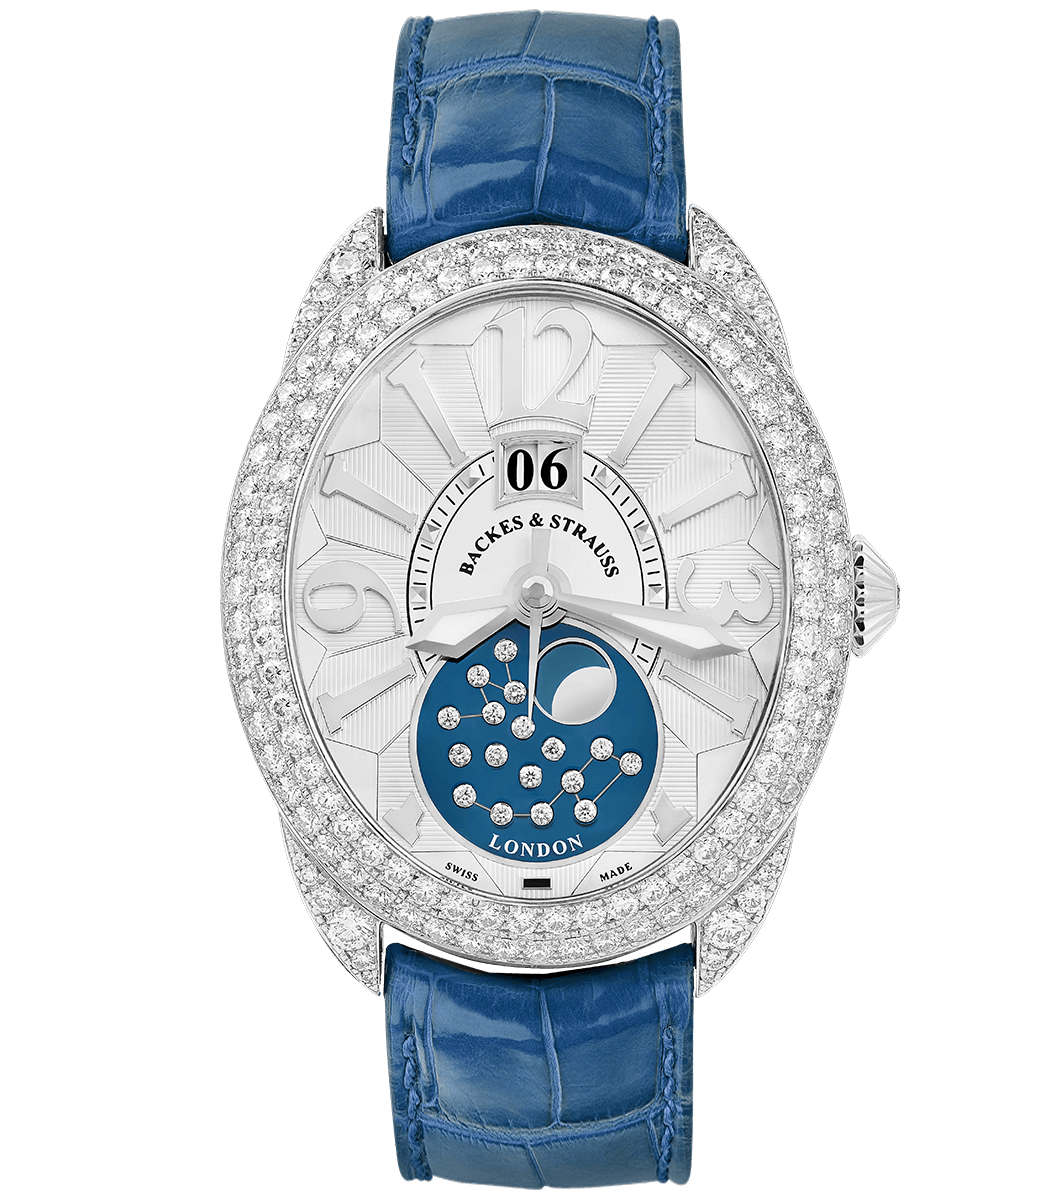 Regent 1609 AD 4047 diamond set case limited edition watch